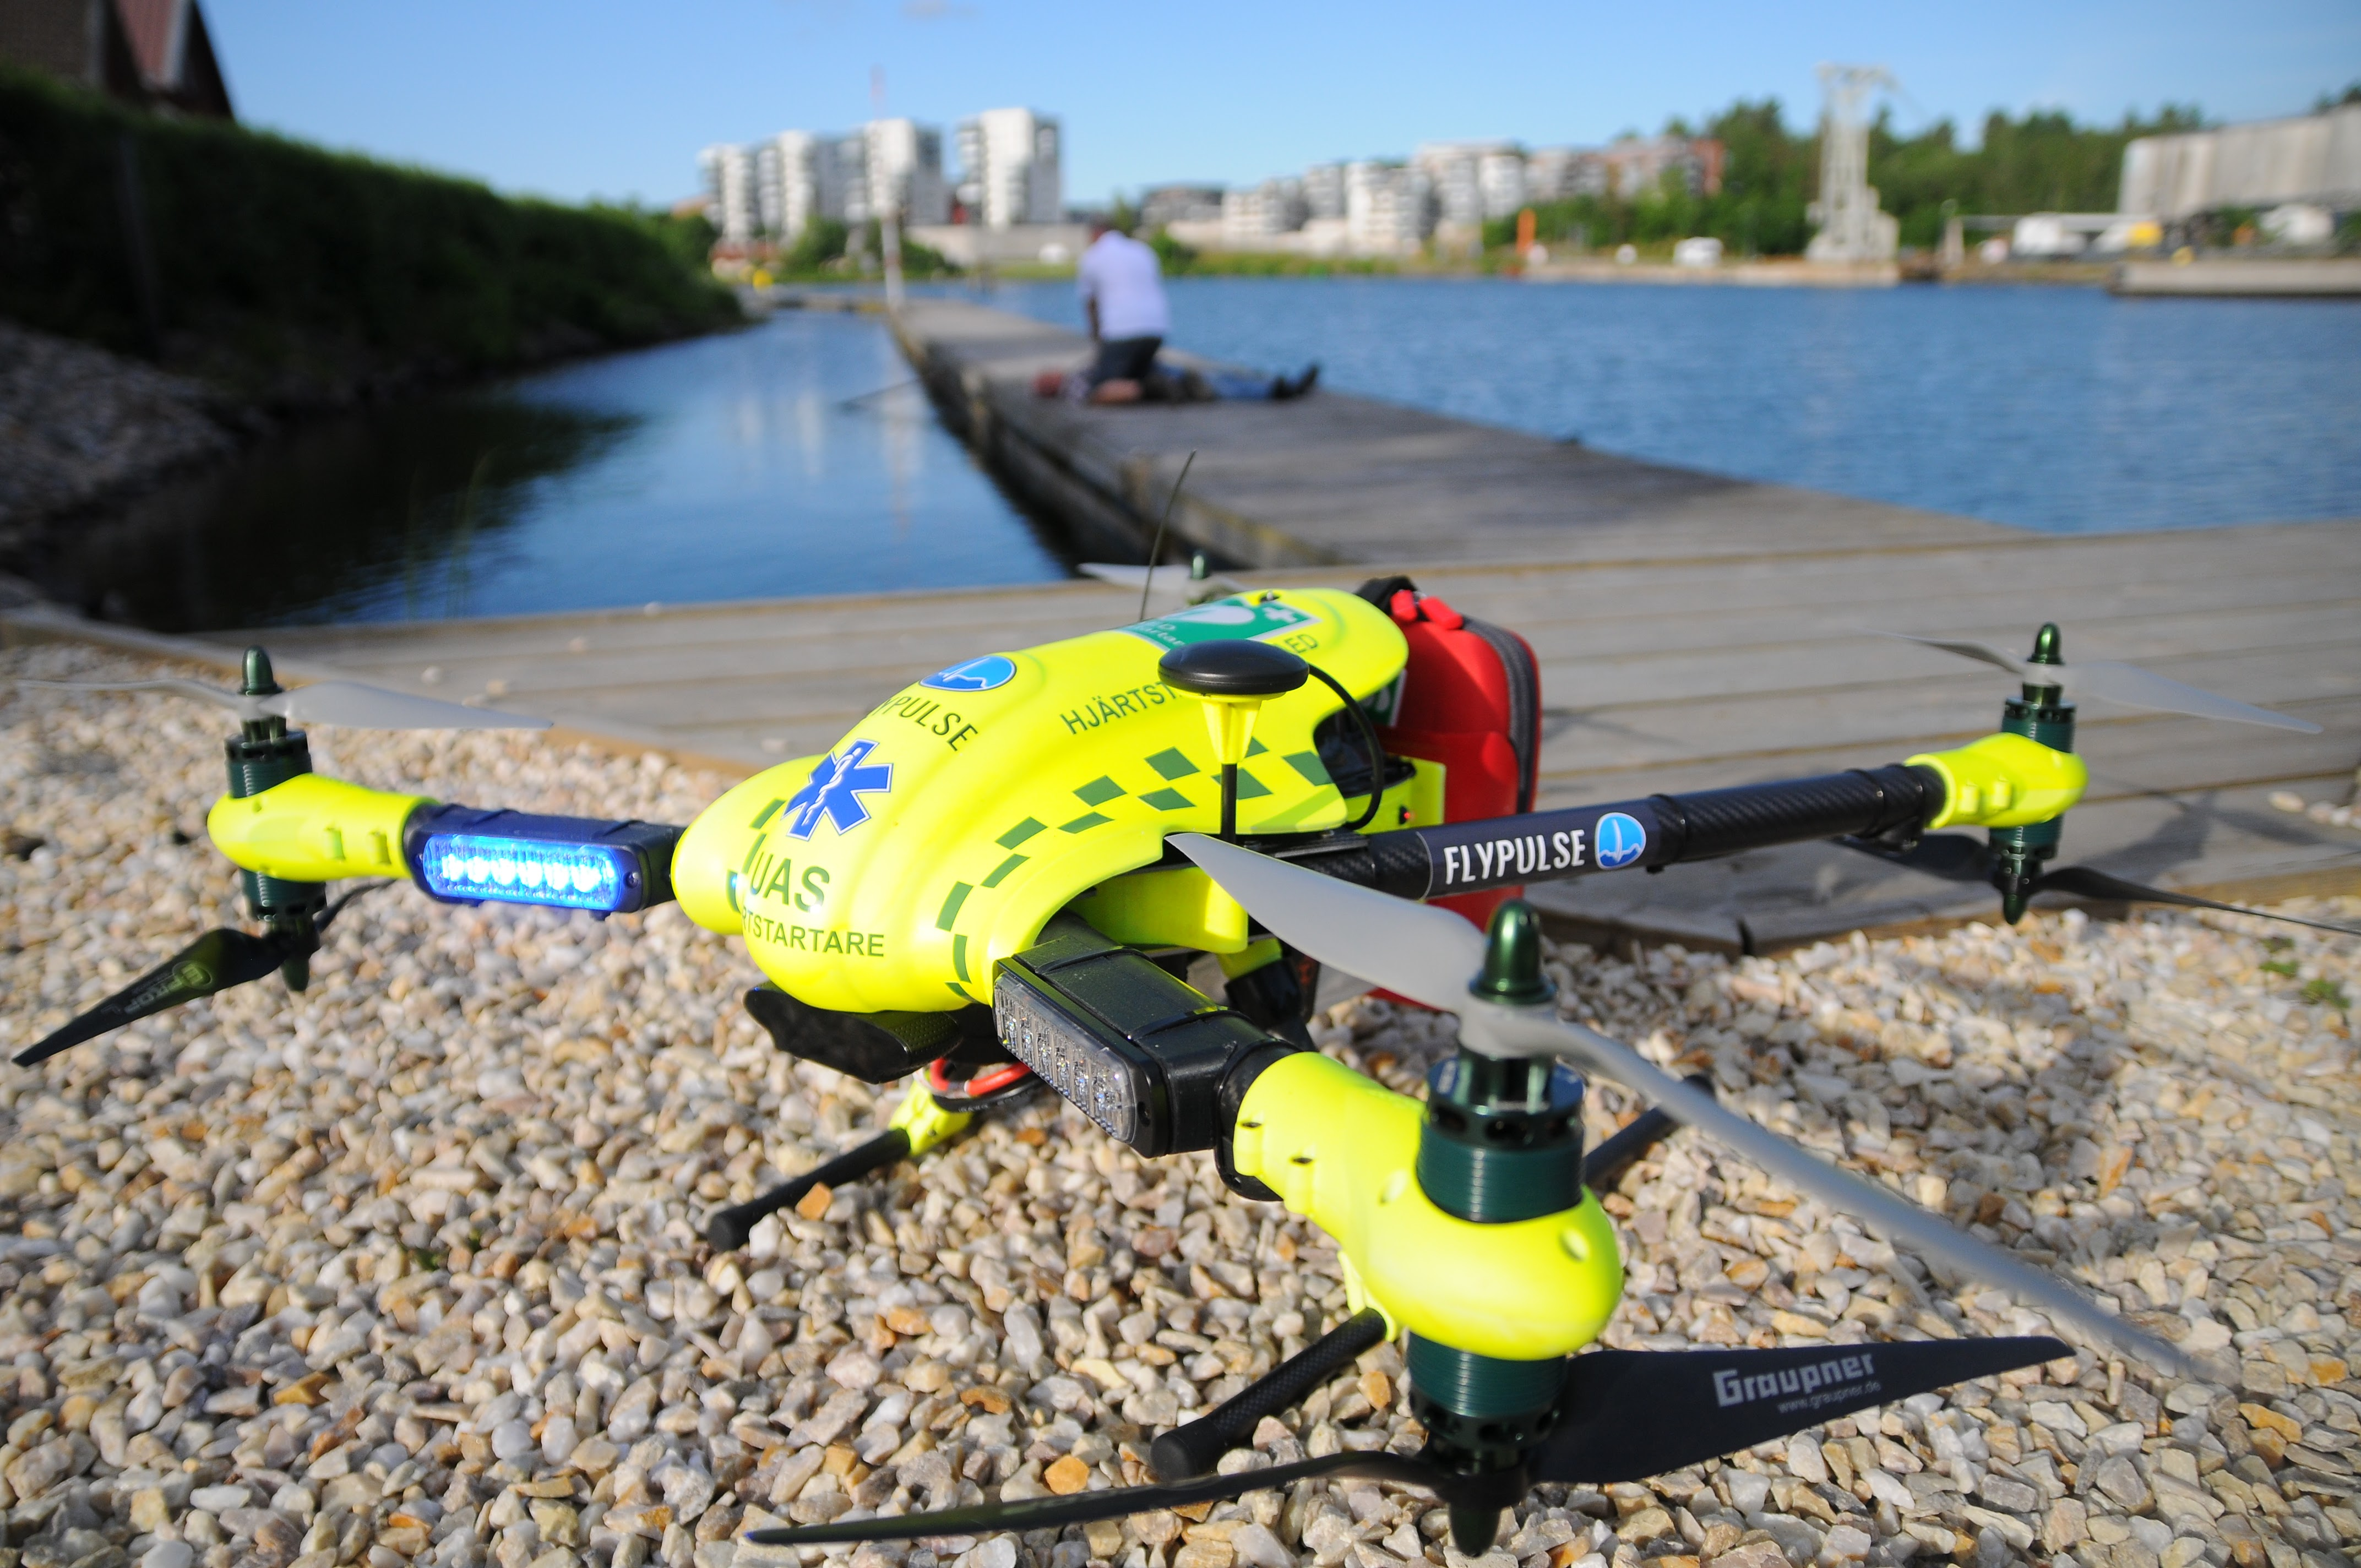 LifeDrone AED flypulse